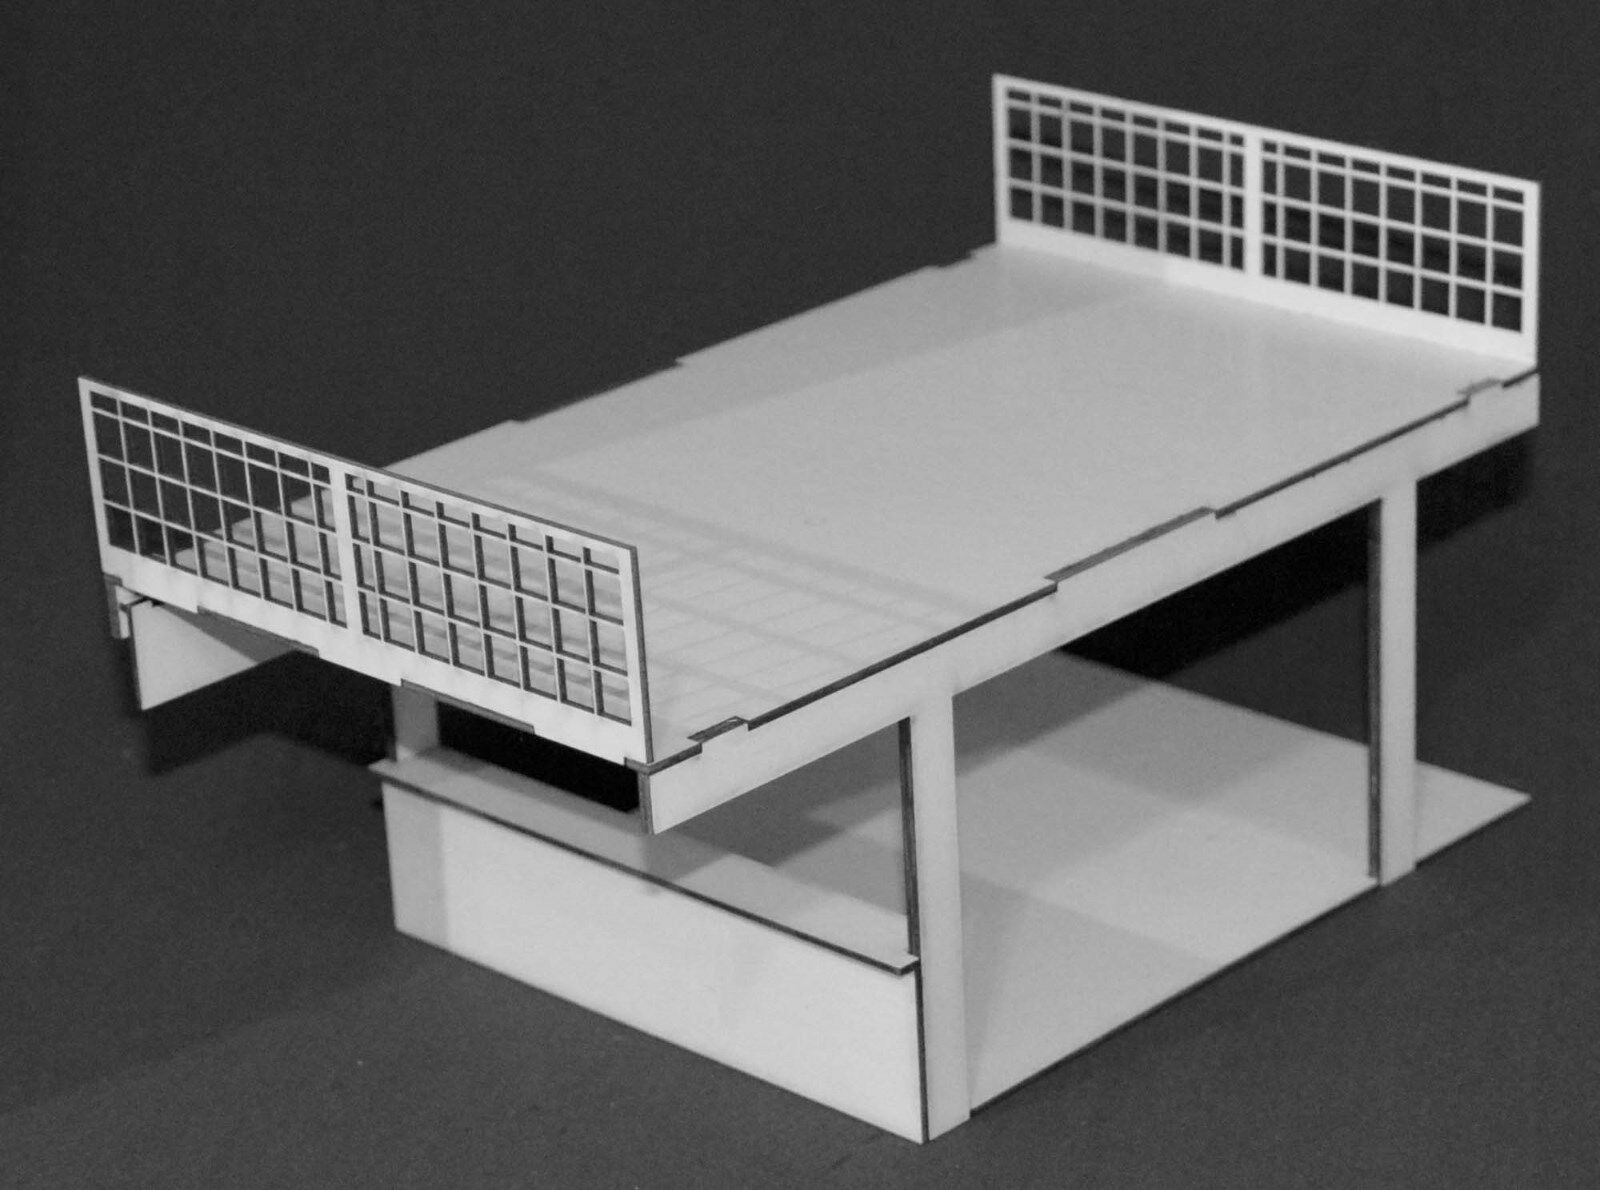 1 32 Scale Goodwood Extension Kit for Scalextric Static Layouts